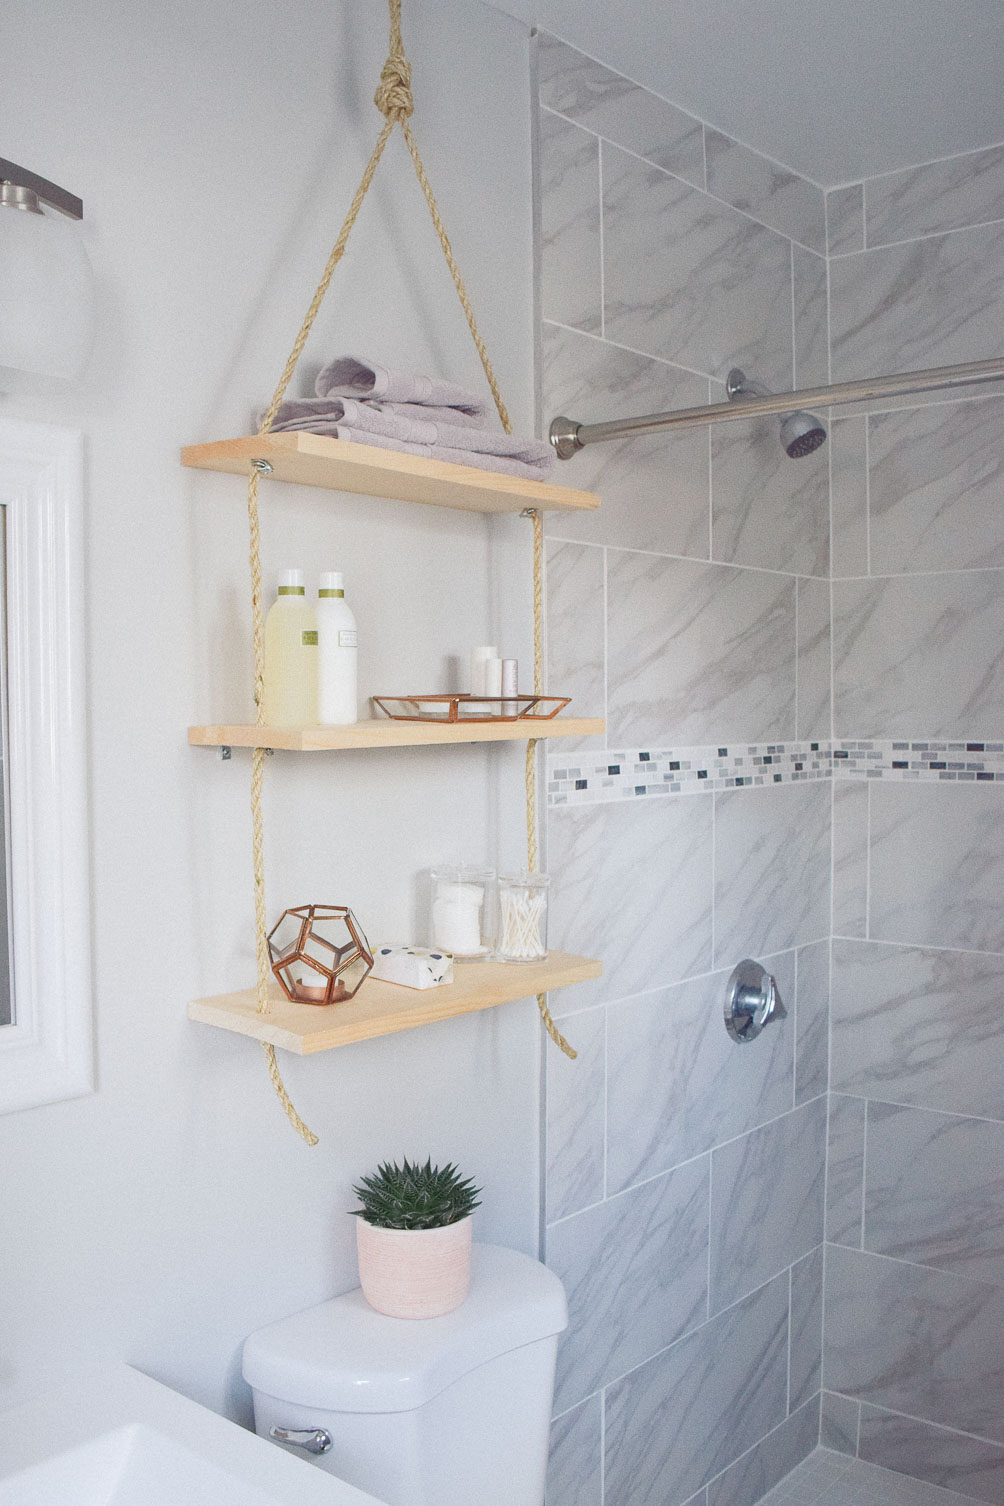 sharing an idea to update home decor with diy hanging shelves for bathroom storage